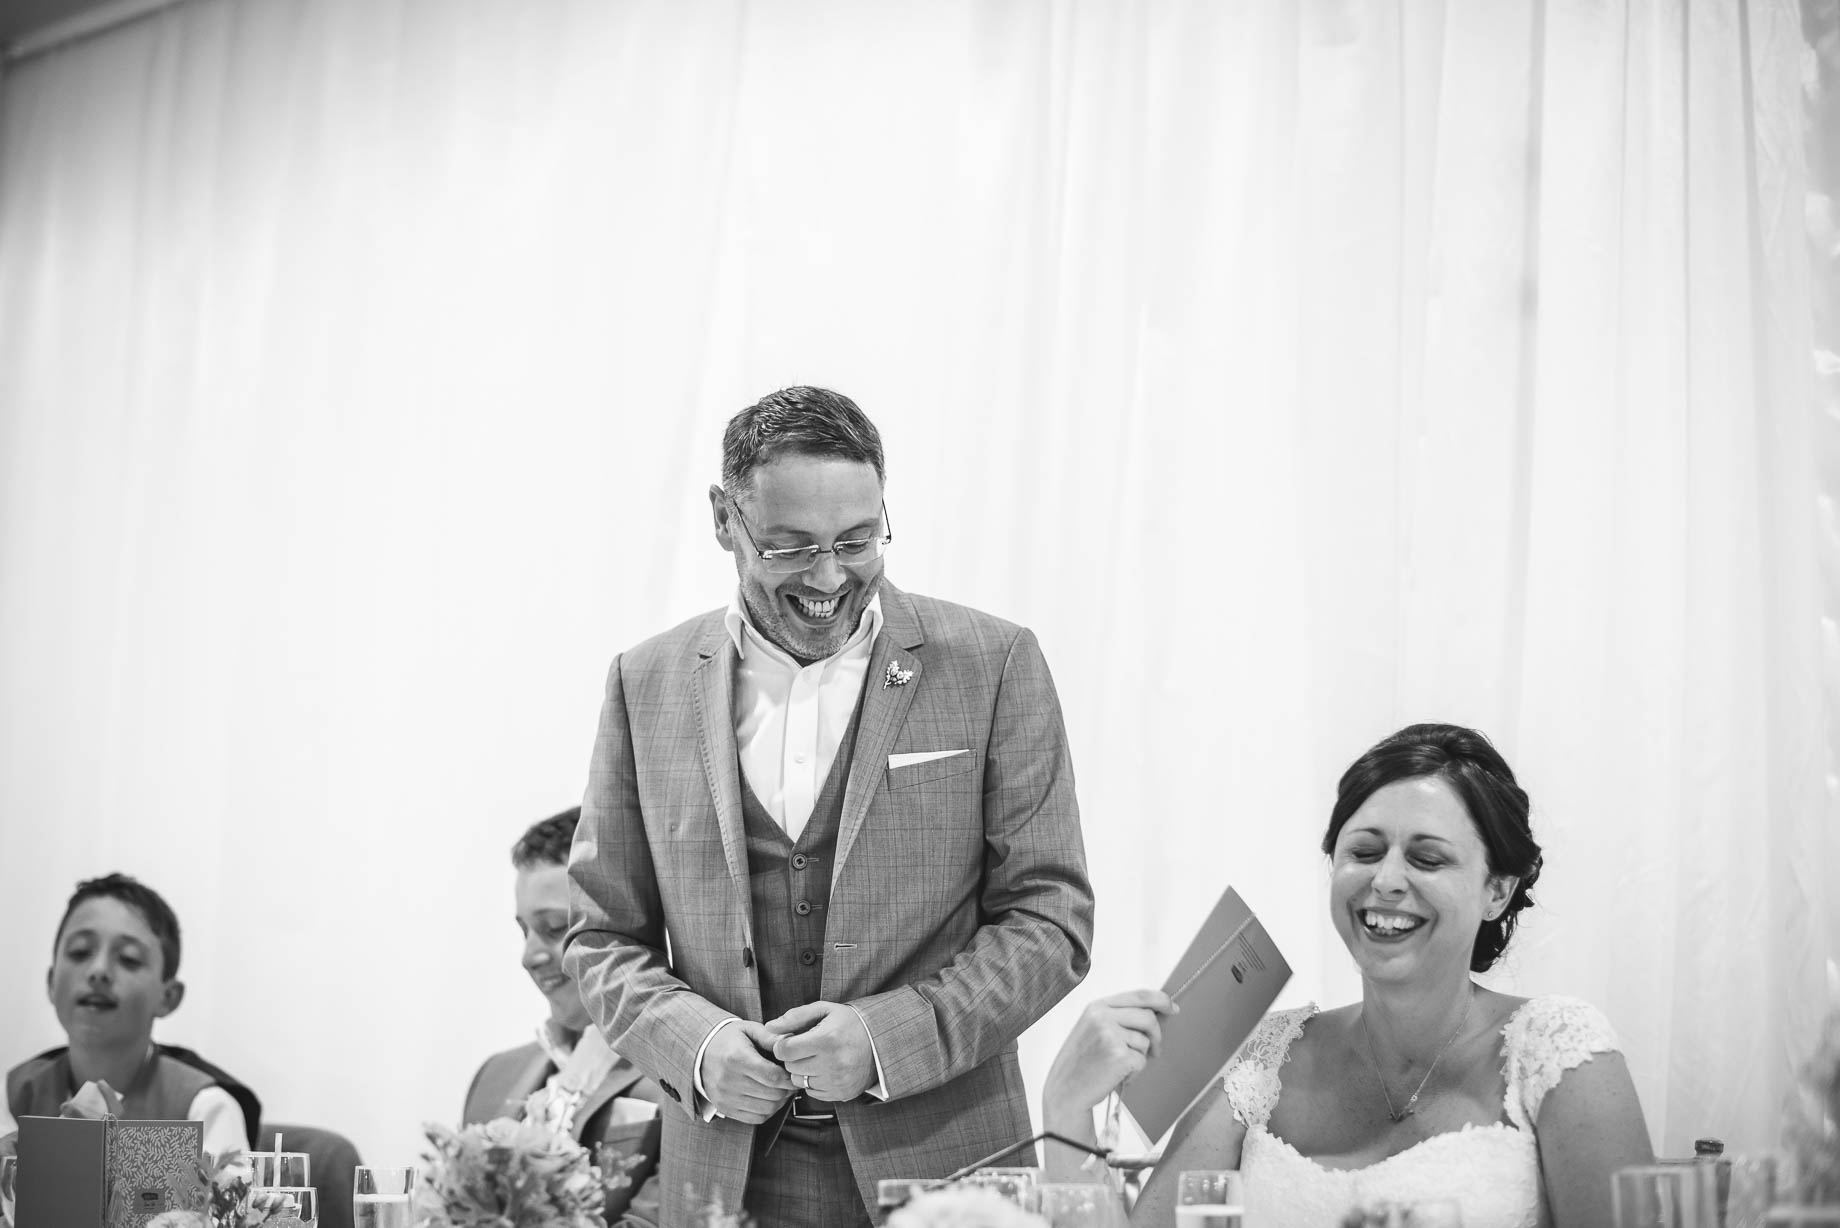 Luton Hoo wedding photography by Guy Collier Photography - Lauren and Gem (130 of 178)